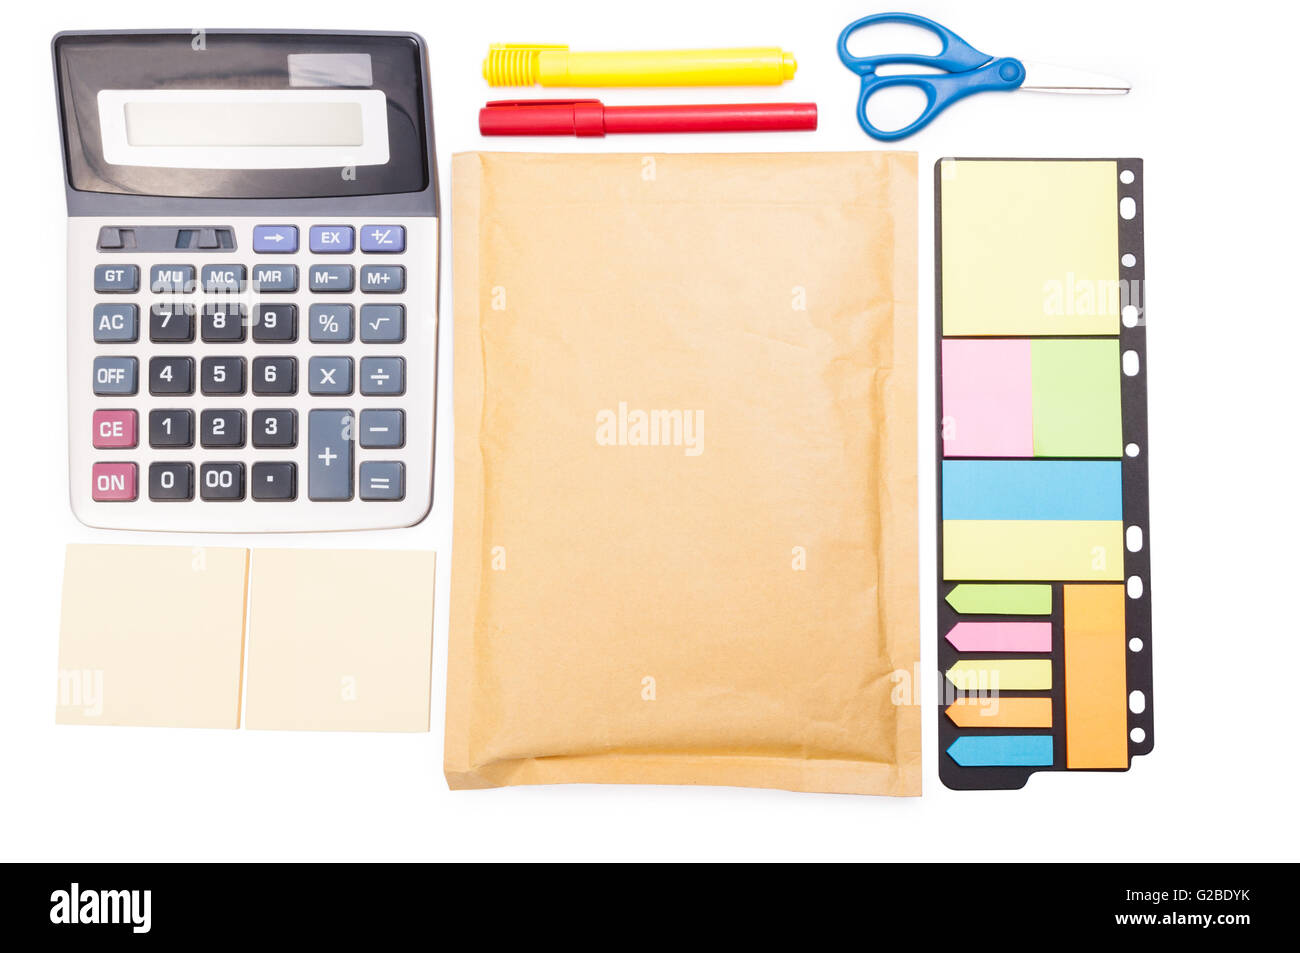 Organized business desk from upper view with paper notes, calculator, envelop and office tools on white background - Stock Image